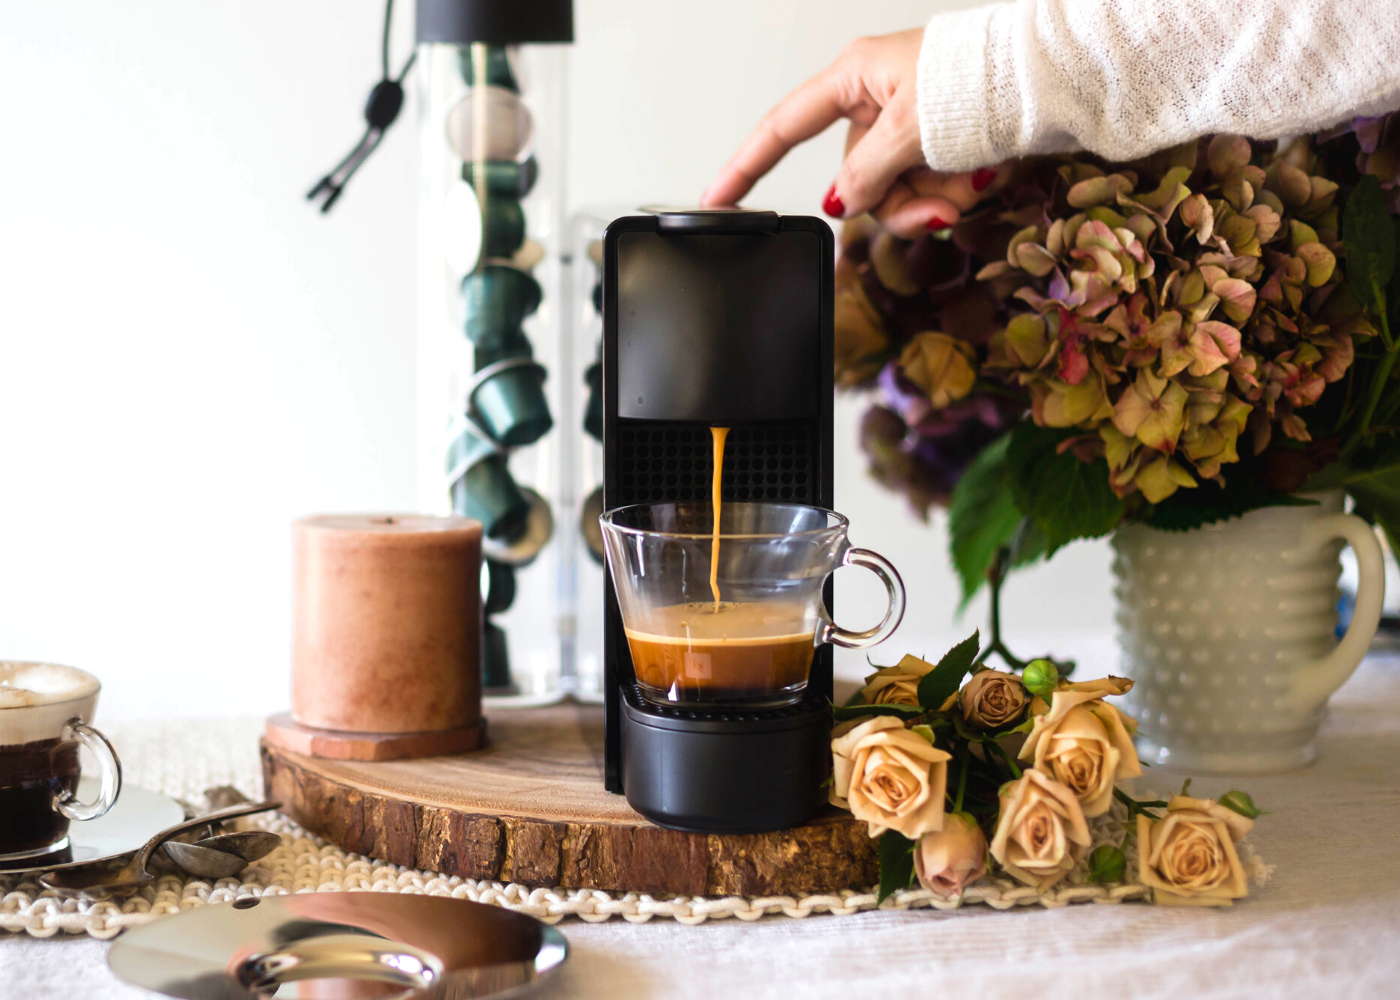 Morning espressos with the Essenza Mini in Matte Black. Photography: Nespresso